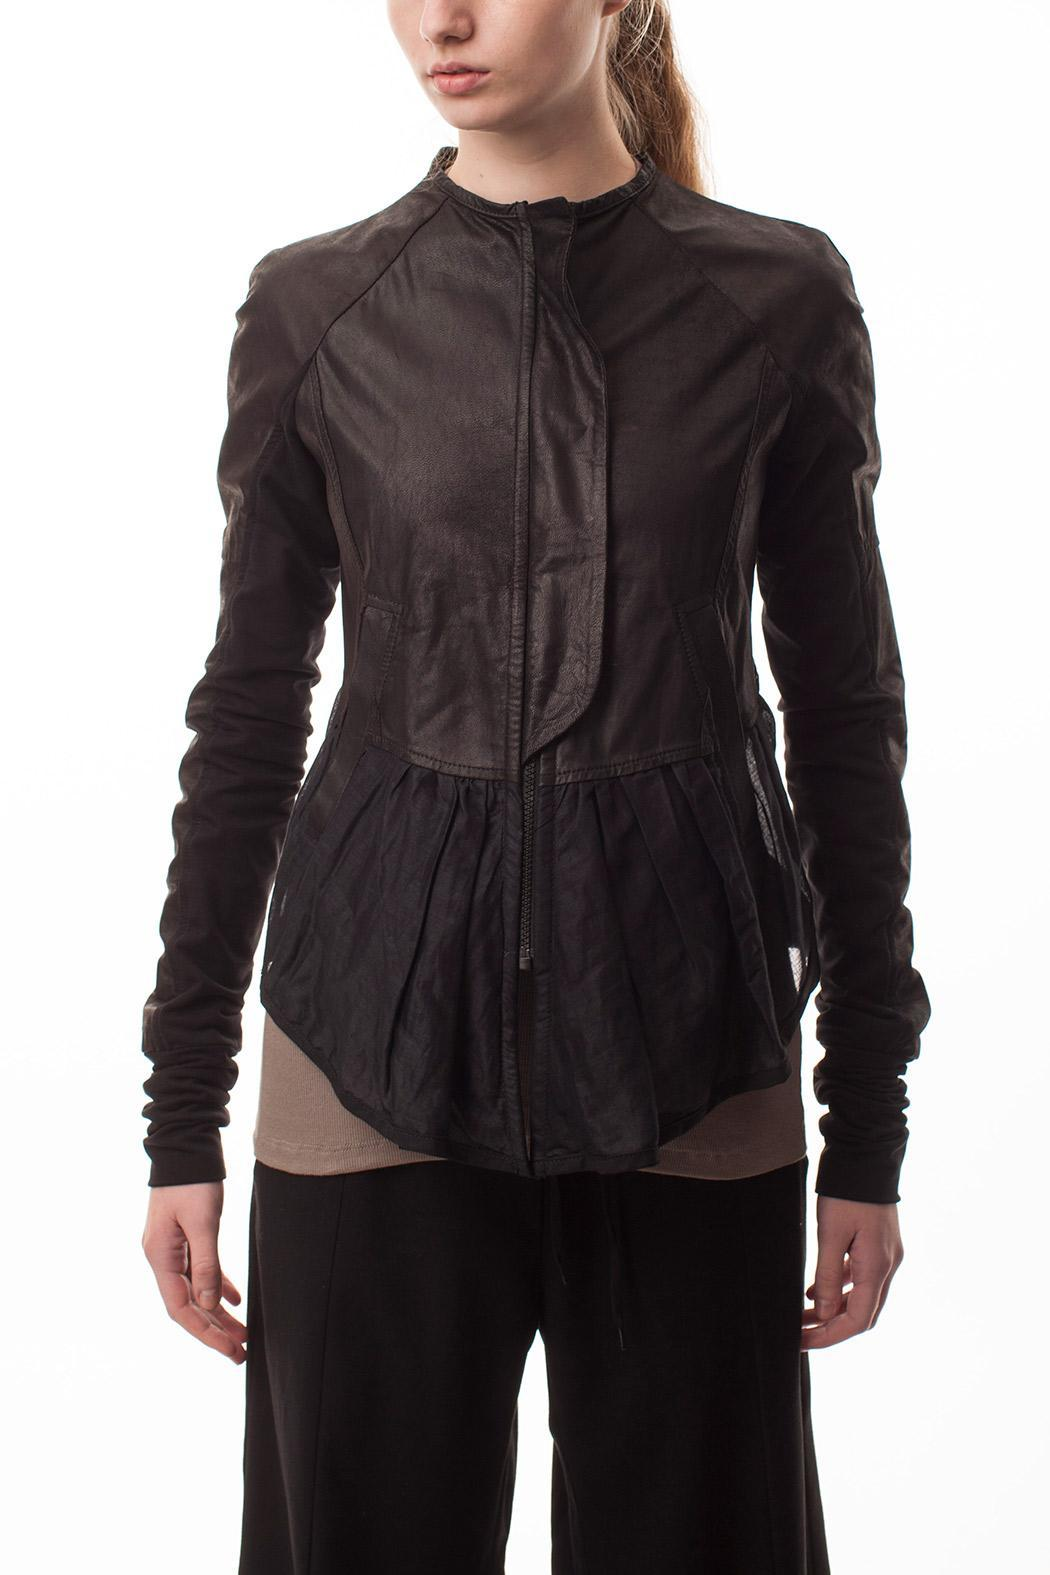 coragroppo Black Leather Jacket - Front Cropped Image